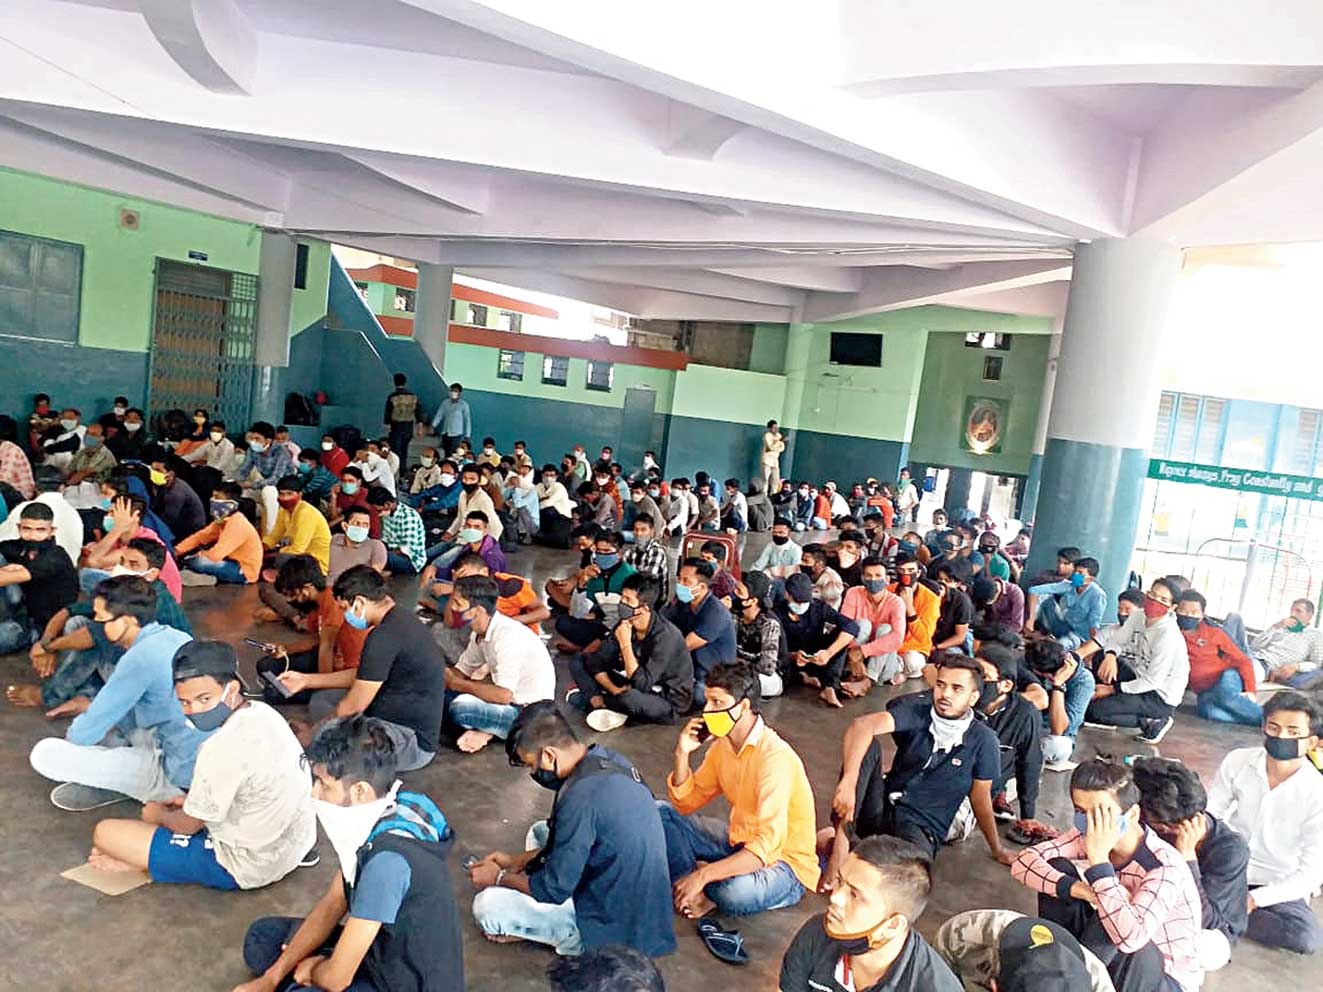 Migrant workers at a shelter in Bangalore on Friday wait for their turn to return home